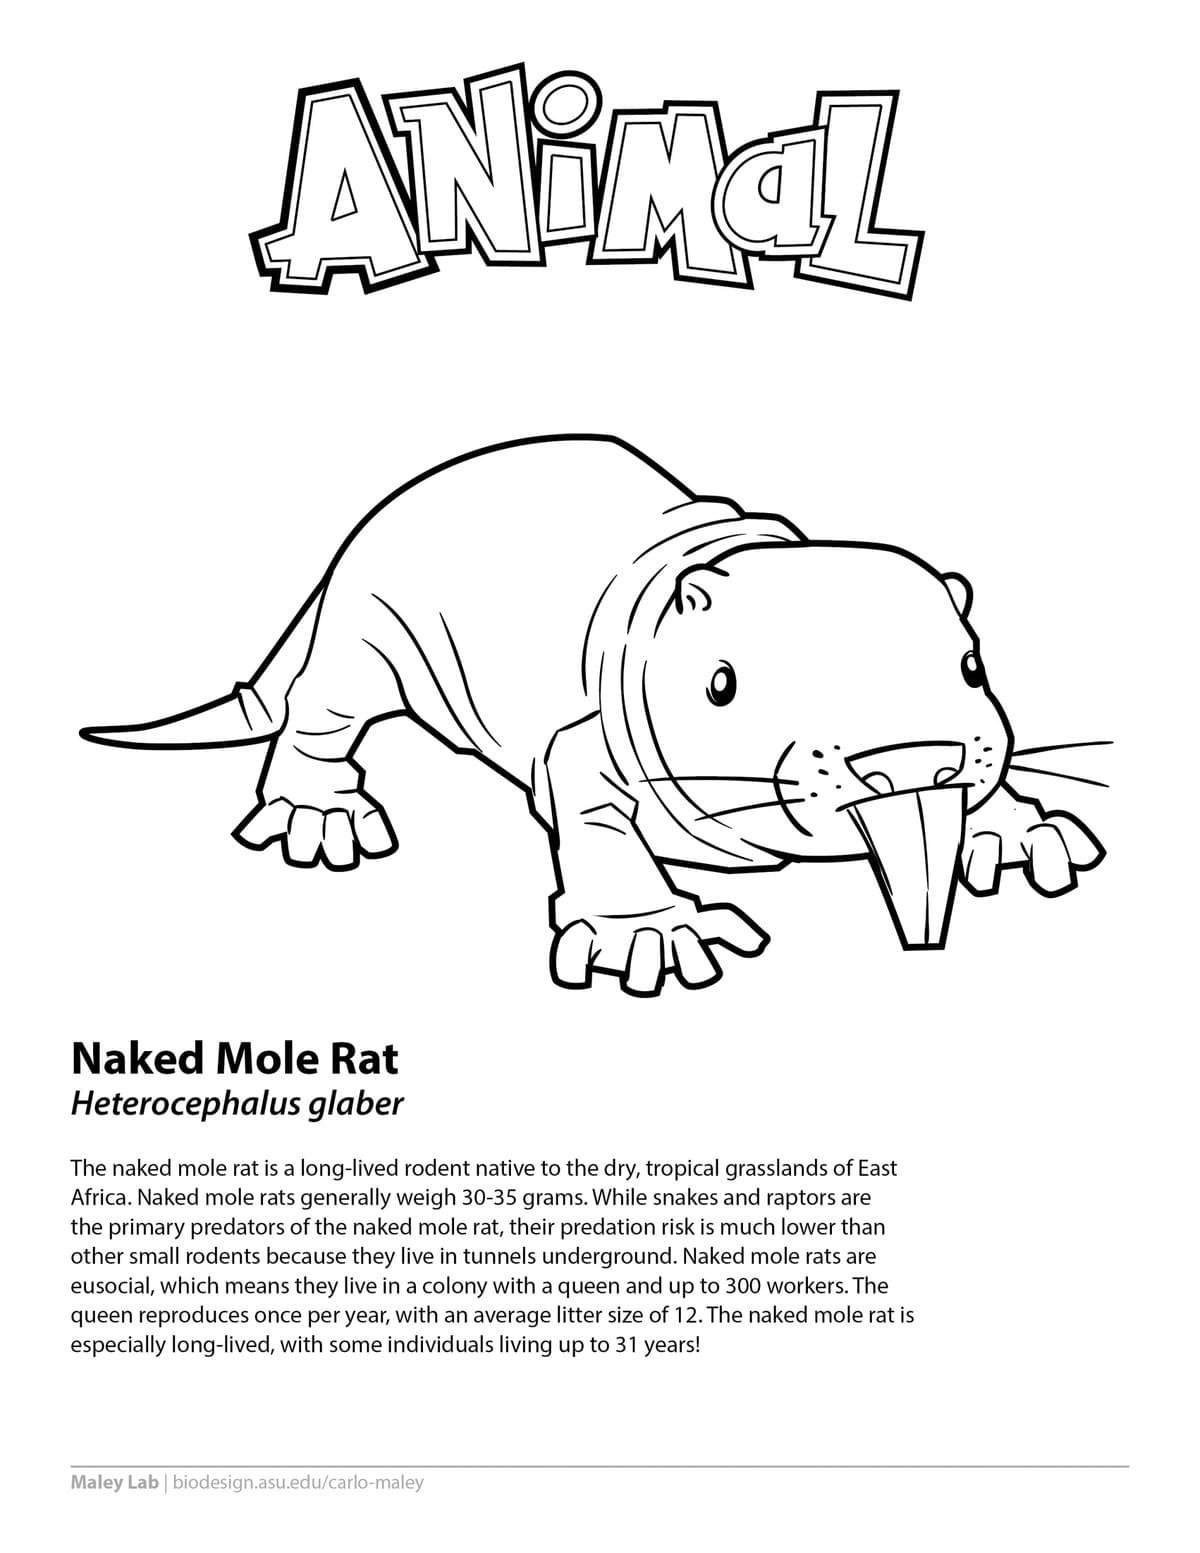 Lab Rats Coloring Page - 8 Things About Lab Rats Coloring ...